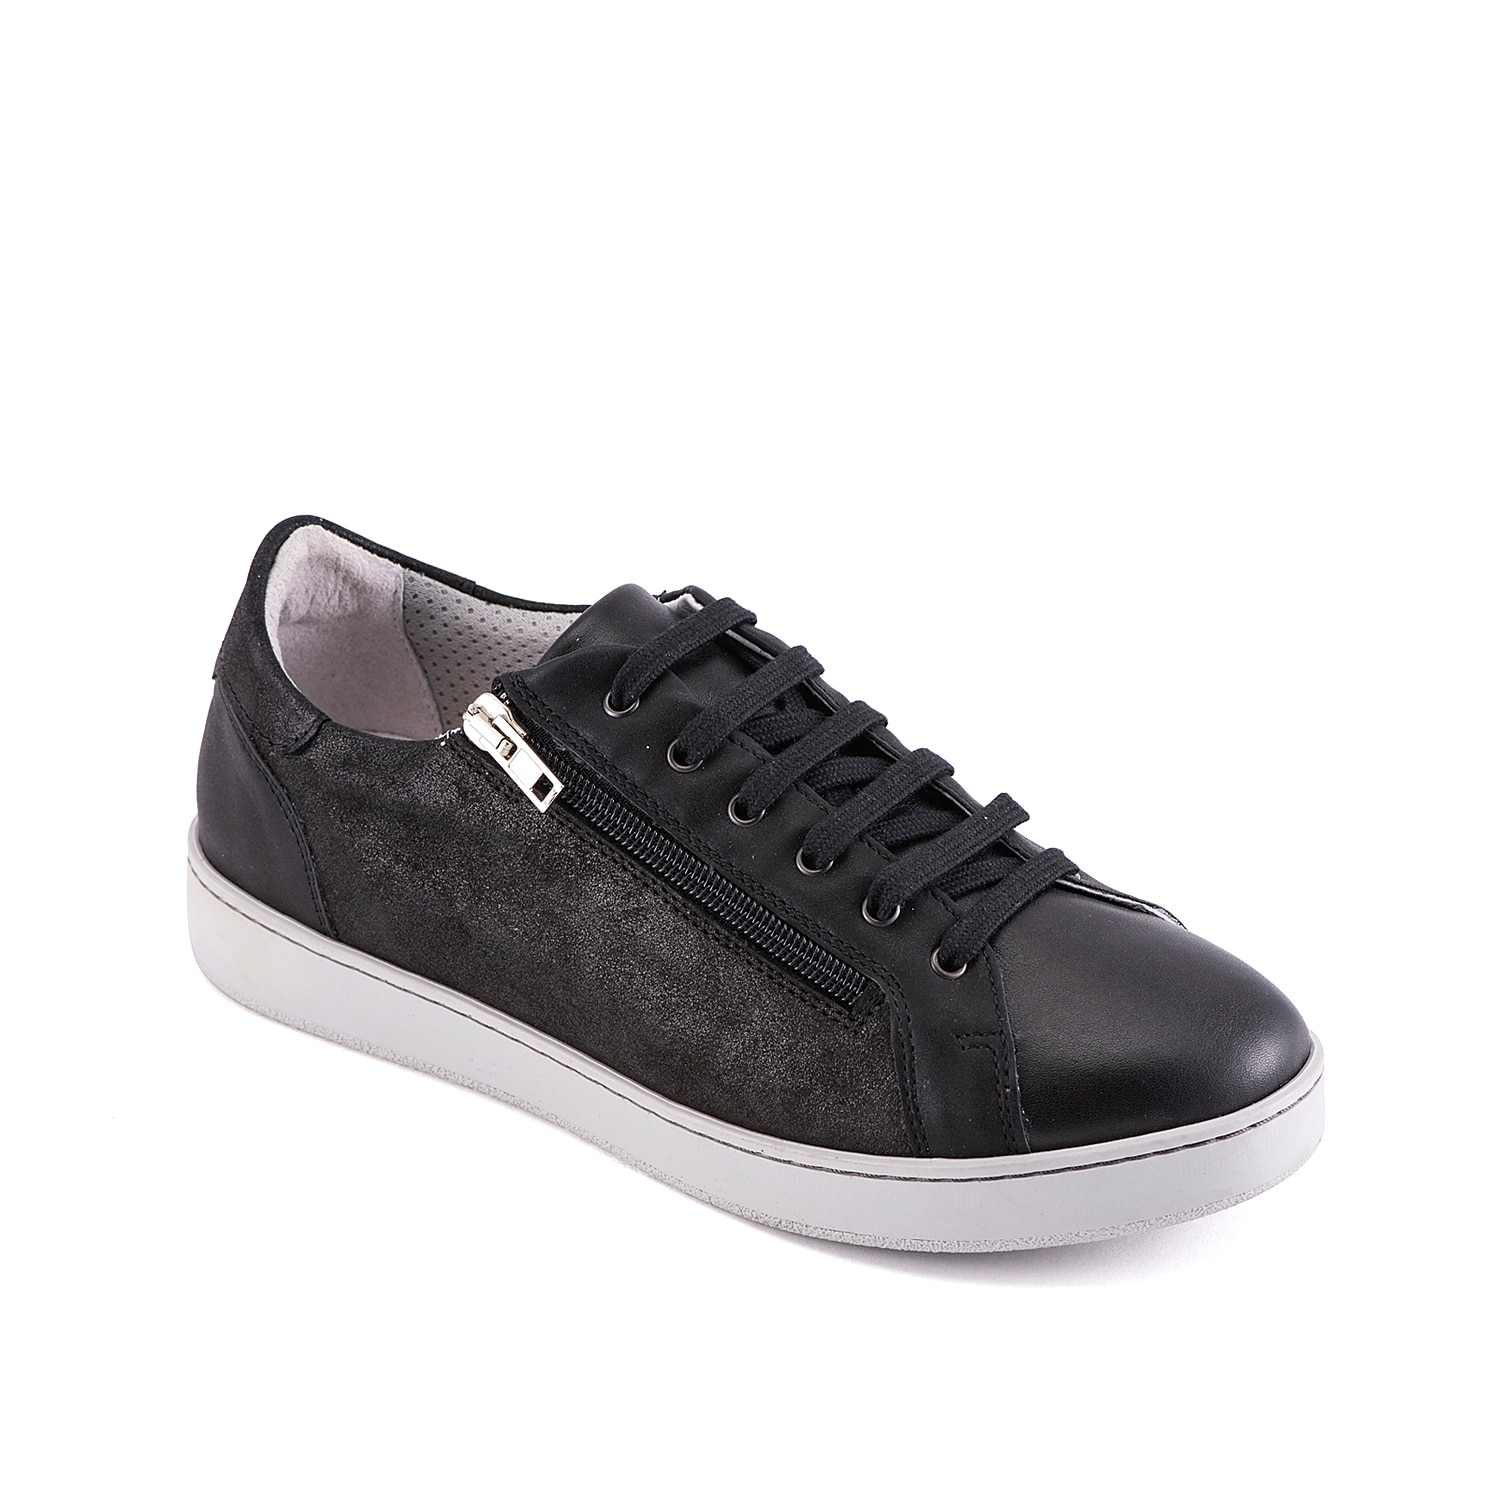 Once you zip into the Eletha sneaker from David Tate, you\\\'ll want to rock them with every outfit! A breathable mesh lining and vulcanized sole adds a sporty finishing touch to this pair.